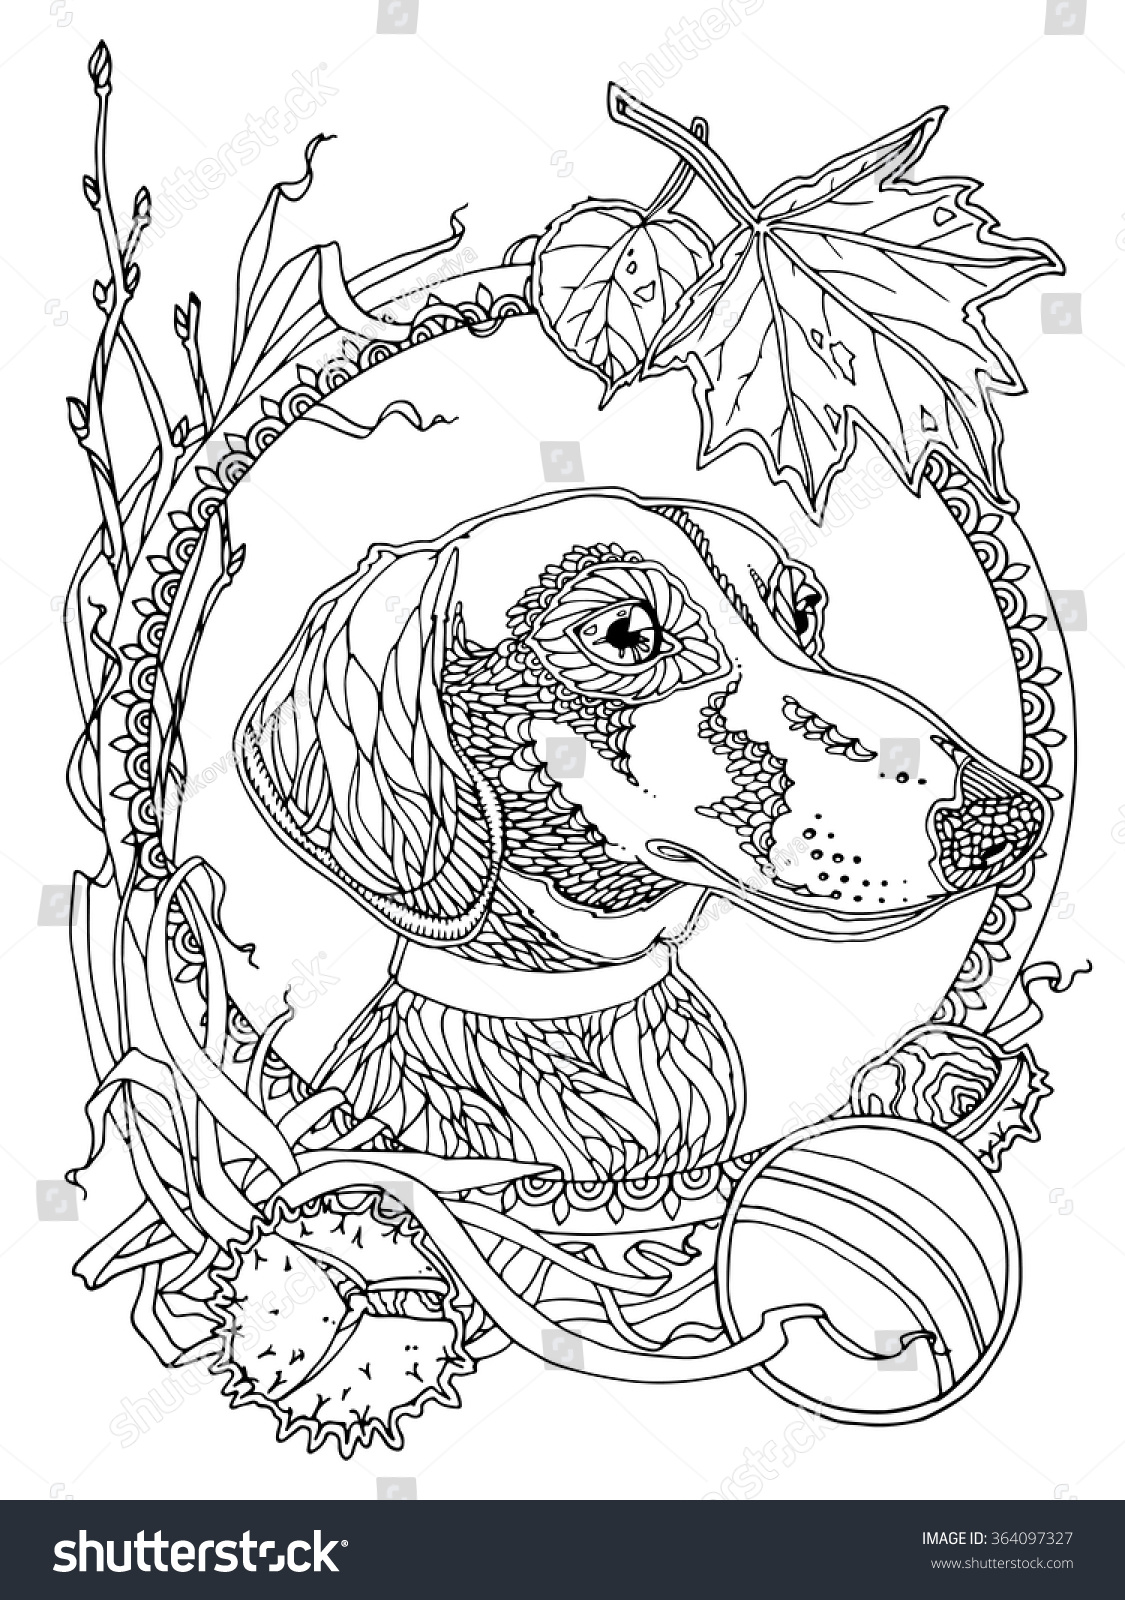 Uncategorized Dachshund Coloring Page dachshund autumn elements coloring page adults stock vector with for antistress coloring